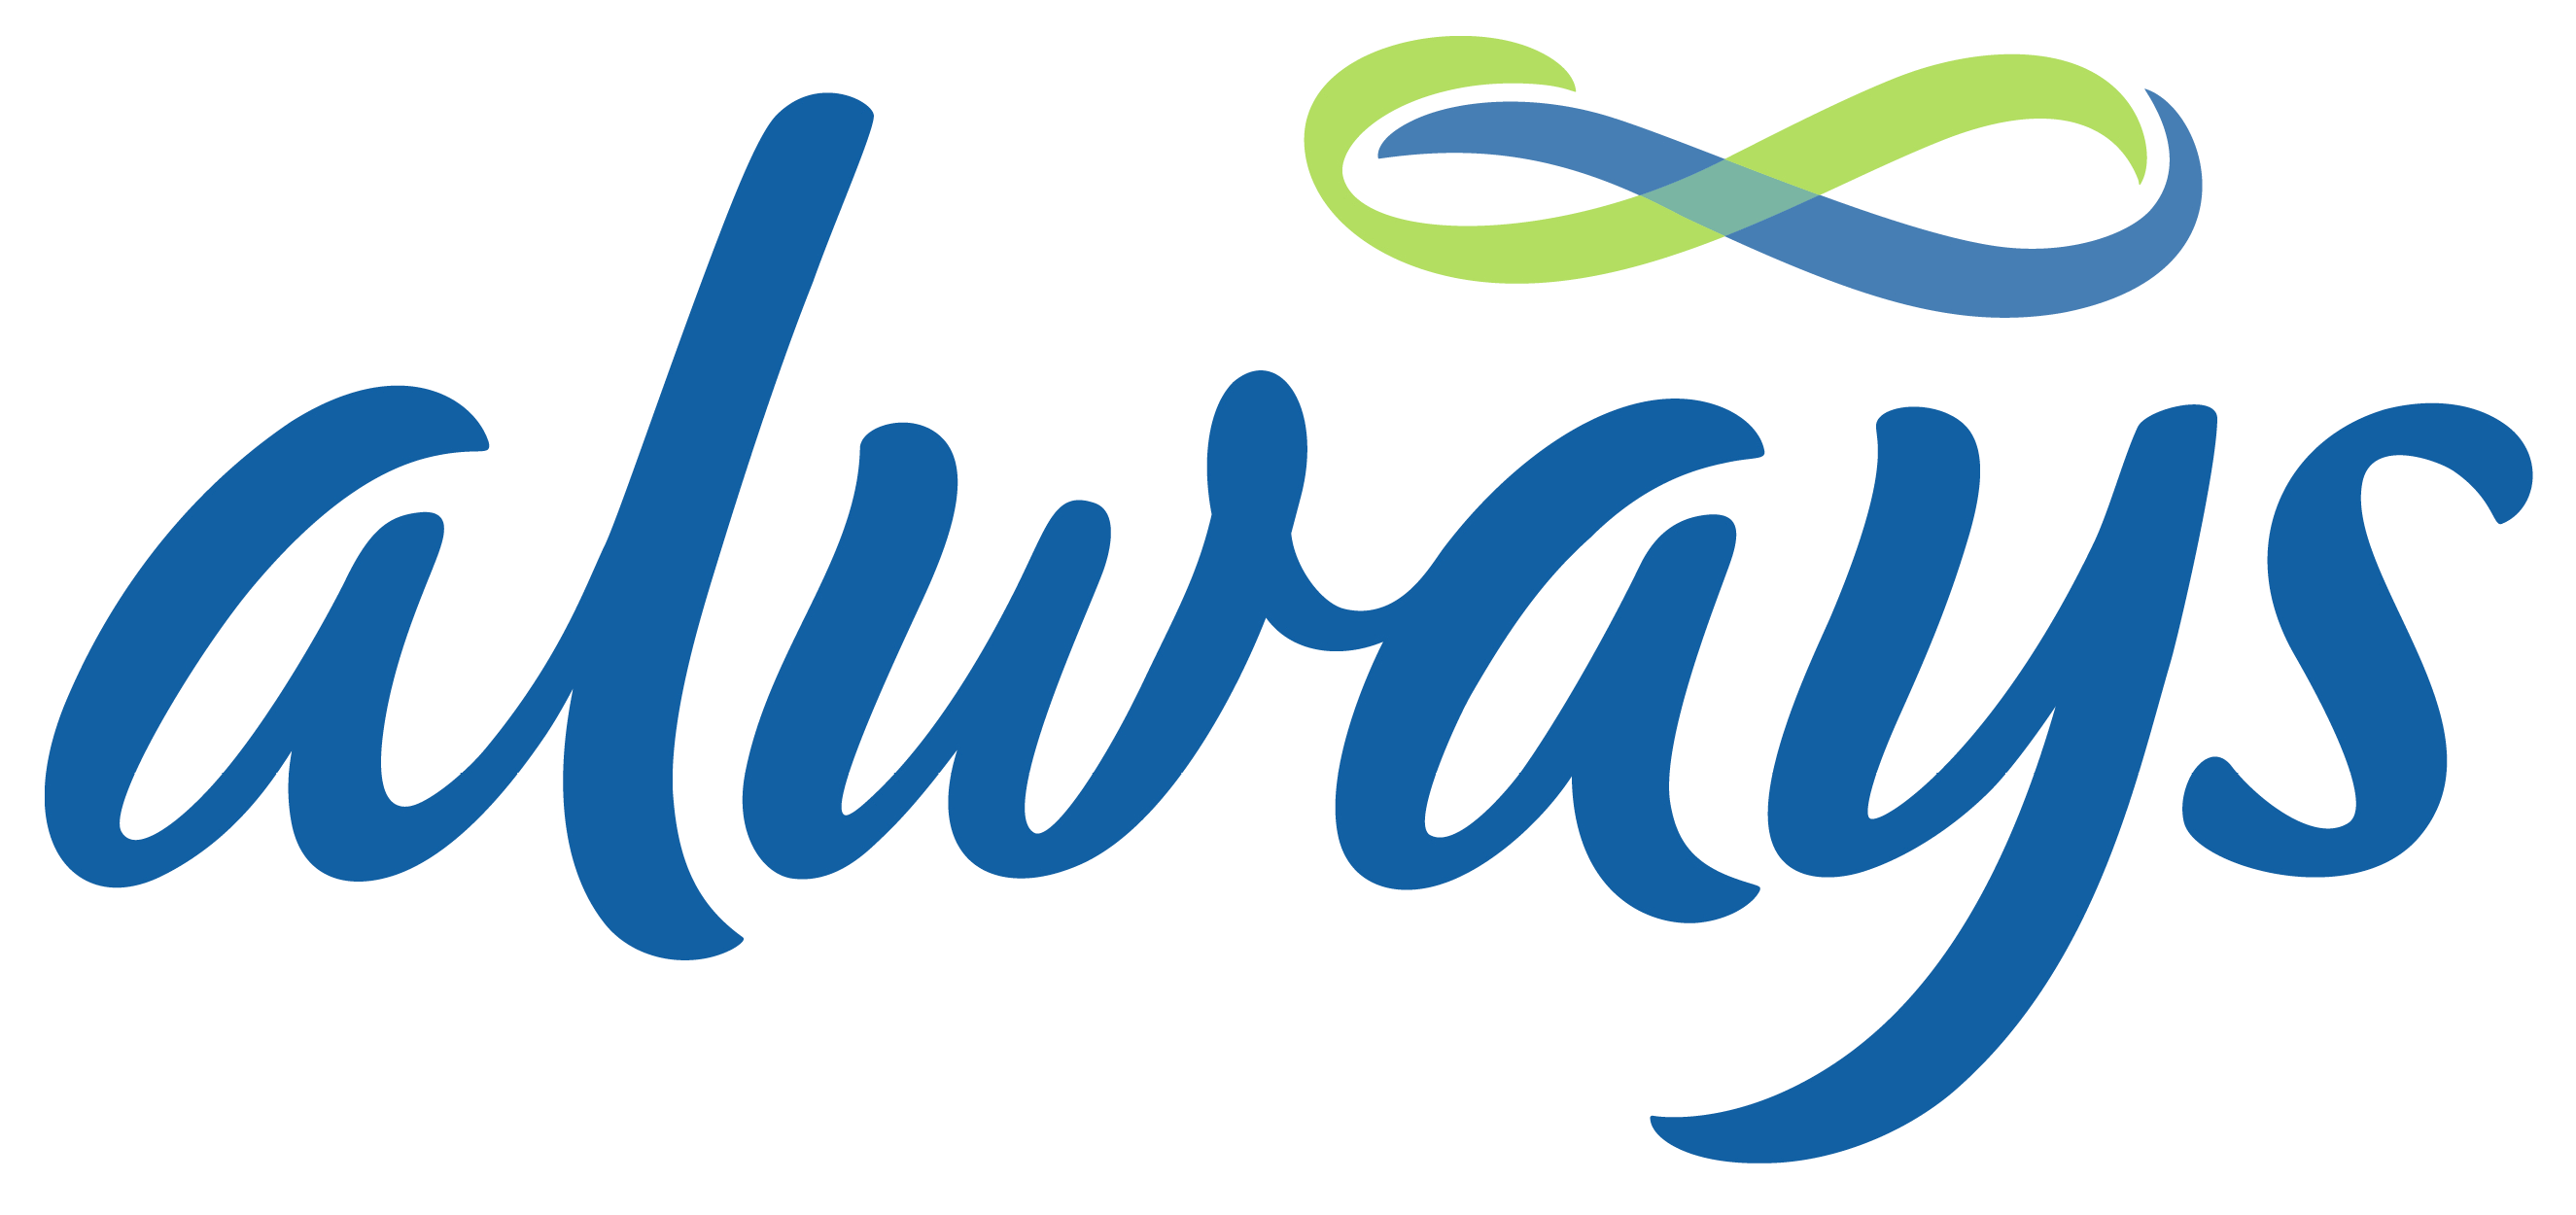 Always logo, logotype, emblem